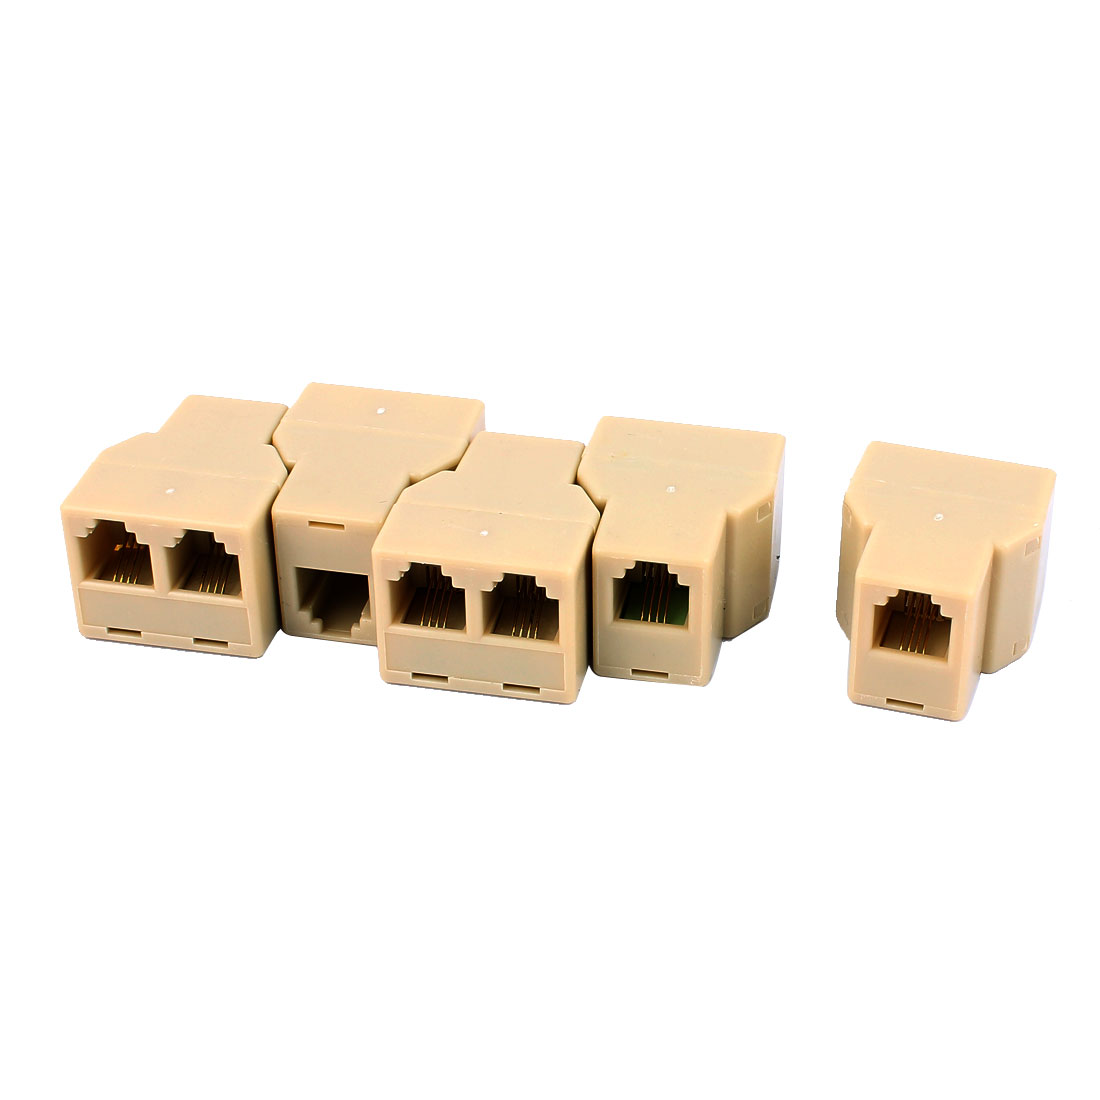 RJ11 6P4C Female to 2 Female Phone Telephone Cable Splitter Coupler 5 Pcs